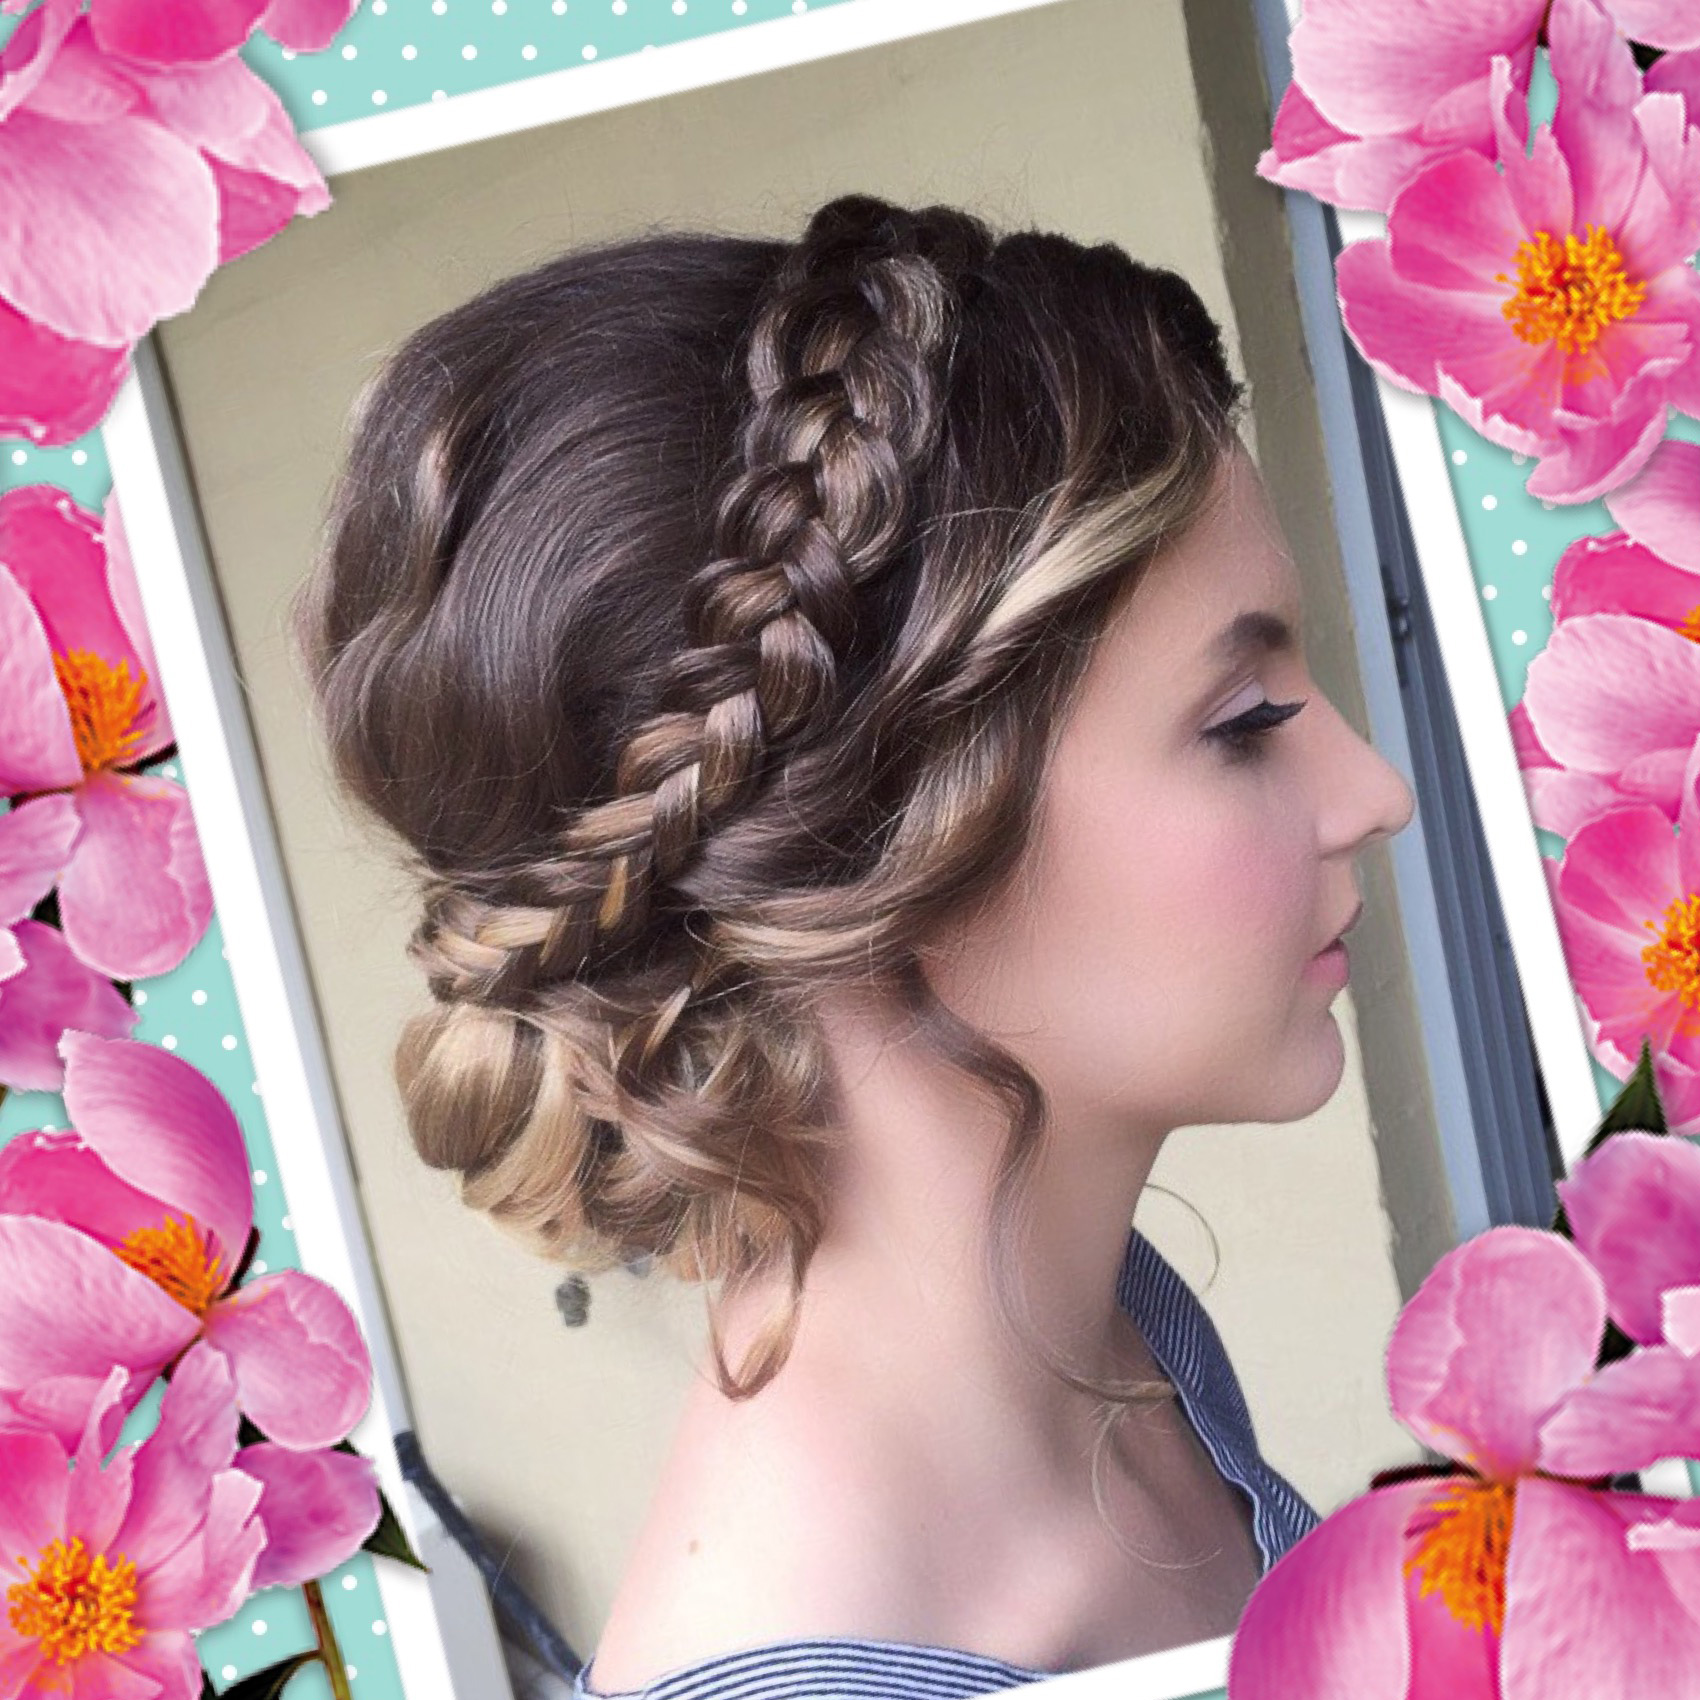 Cute braid updo hair ideas